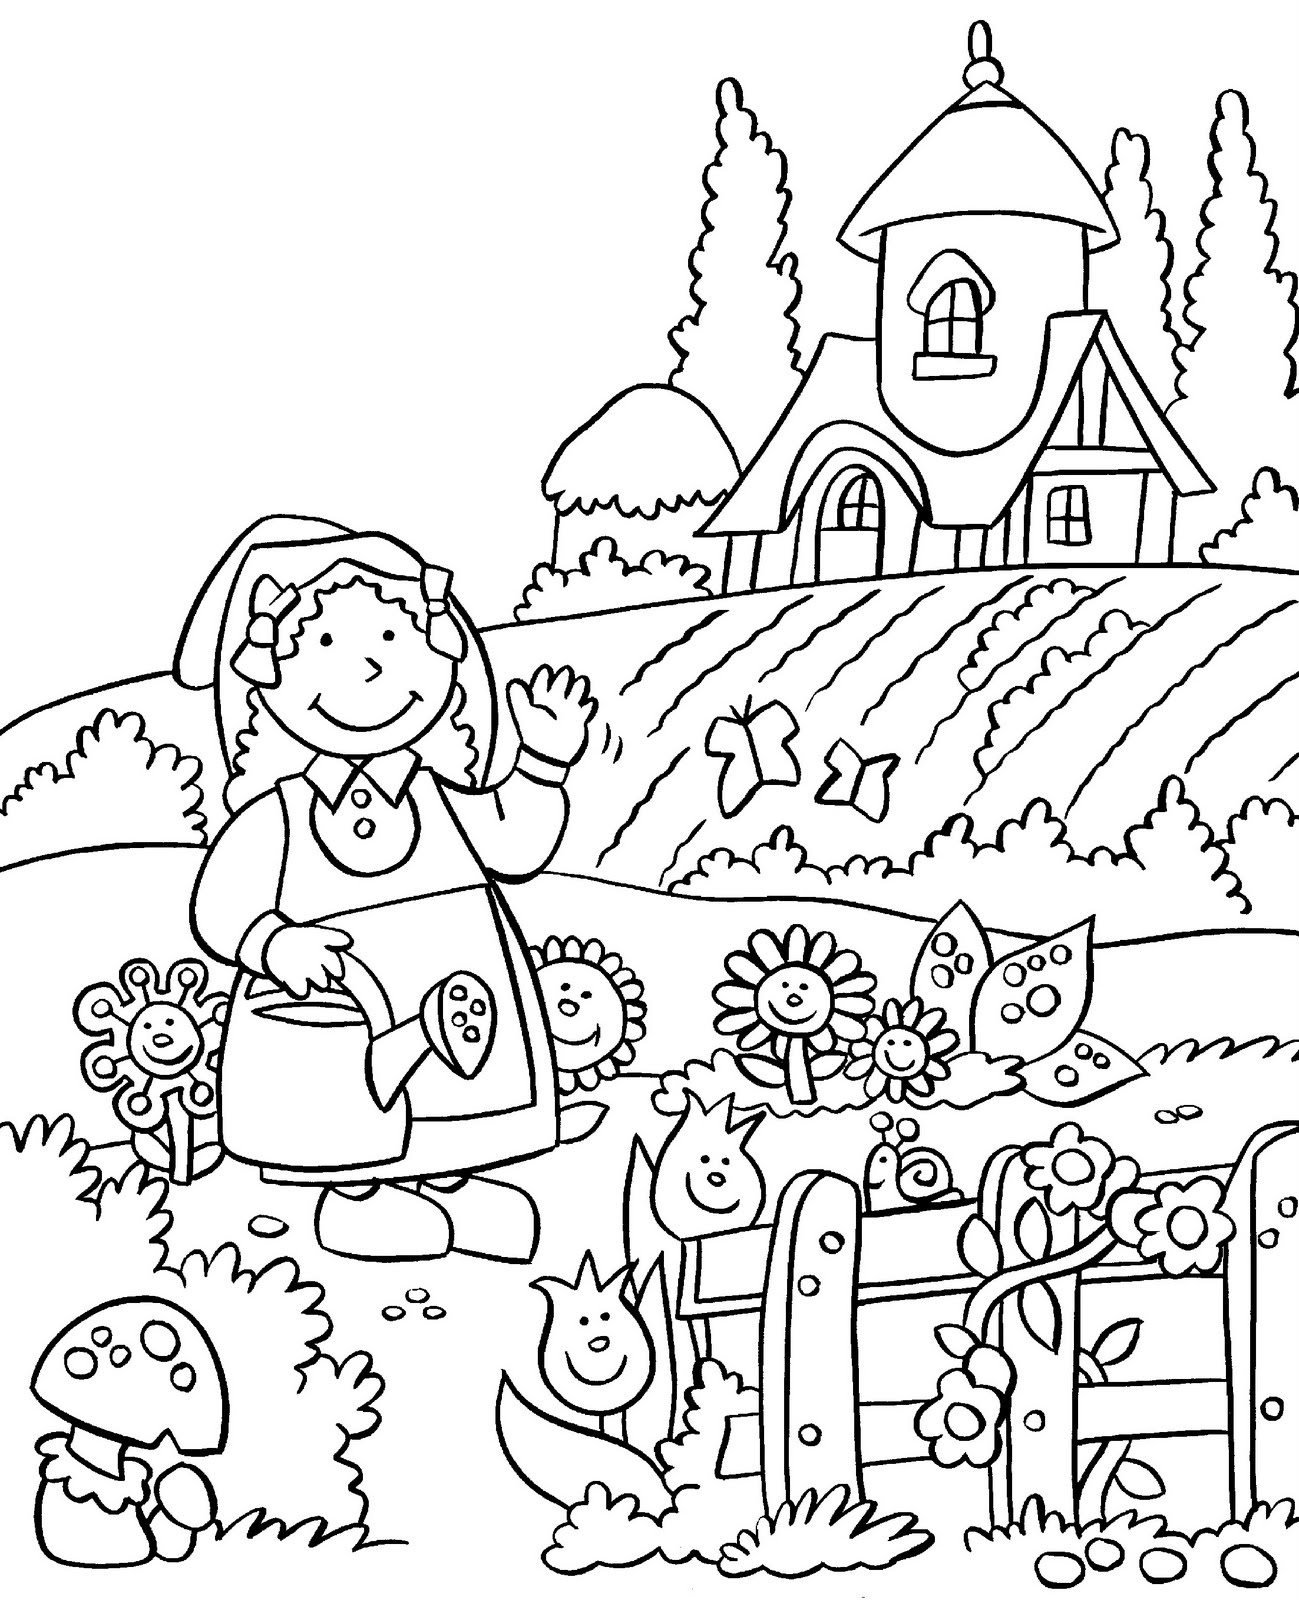 garden coloring pictures gardening coloring pages to download and print for free pictures coloring garden